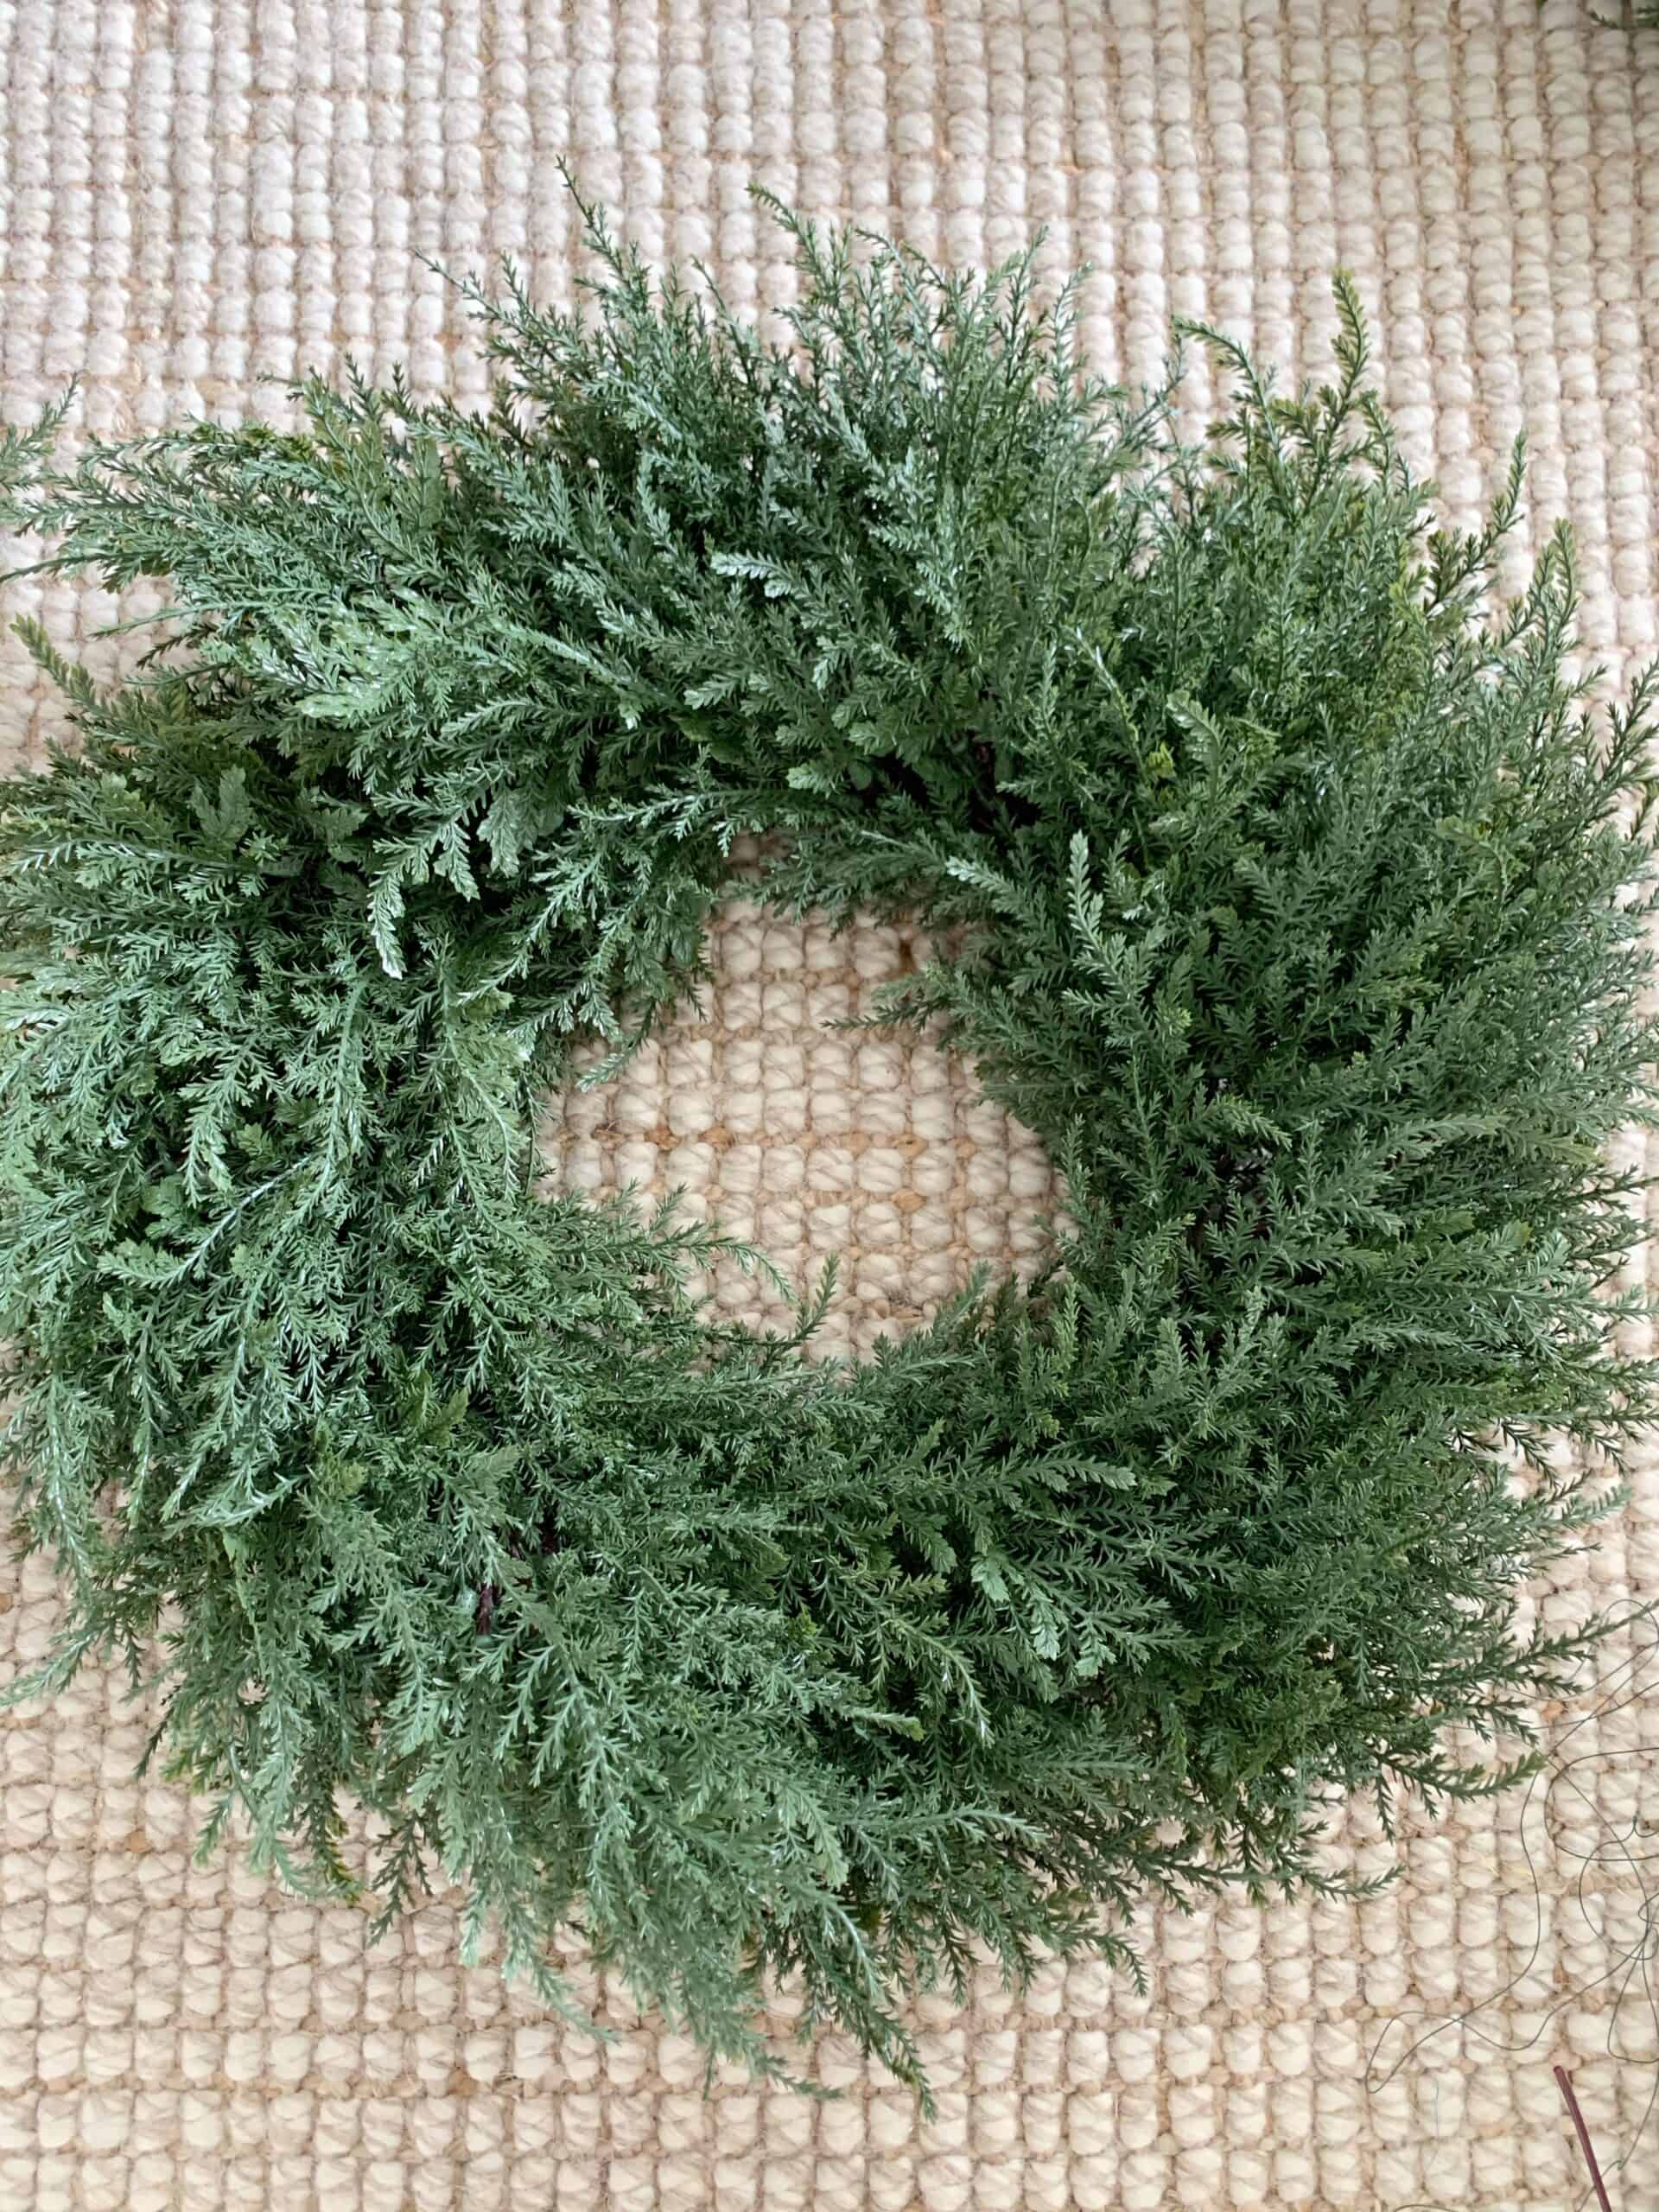 Neutral evergreen wreaths for your front porch that transition from fall to winter.  These green wreaths are perfect for fall porch decor and can be used for Christmas decor.  Cedar, juniper, eucalyptus, magnolia, and pine wreaths for fall and winter porches.  #wreaths #winterwreath #neutralwreath #christmaswreath #fallwreath #falldecor #christmasdecor #christmas #neutralchristmasdecor #neutralfall